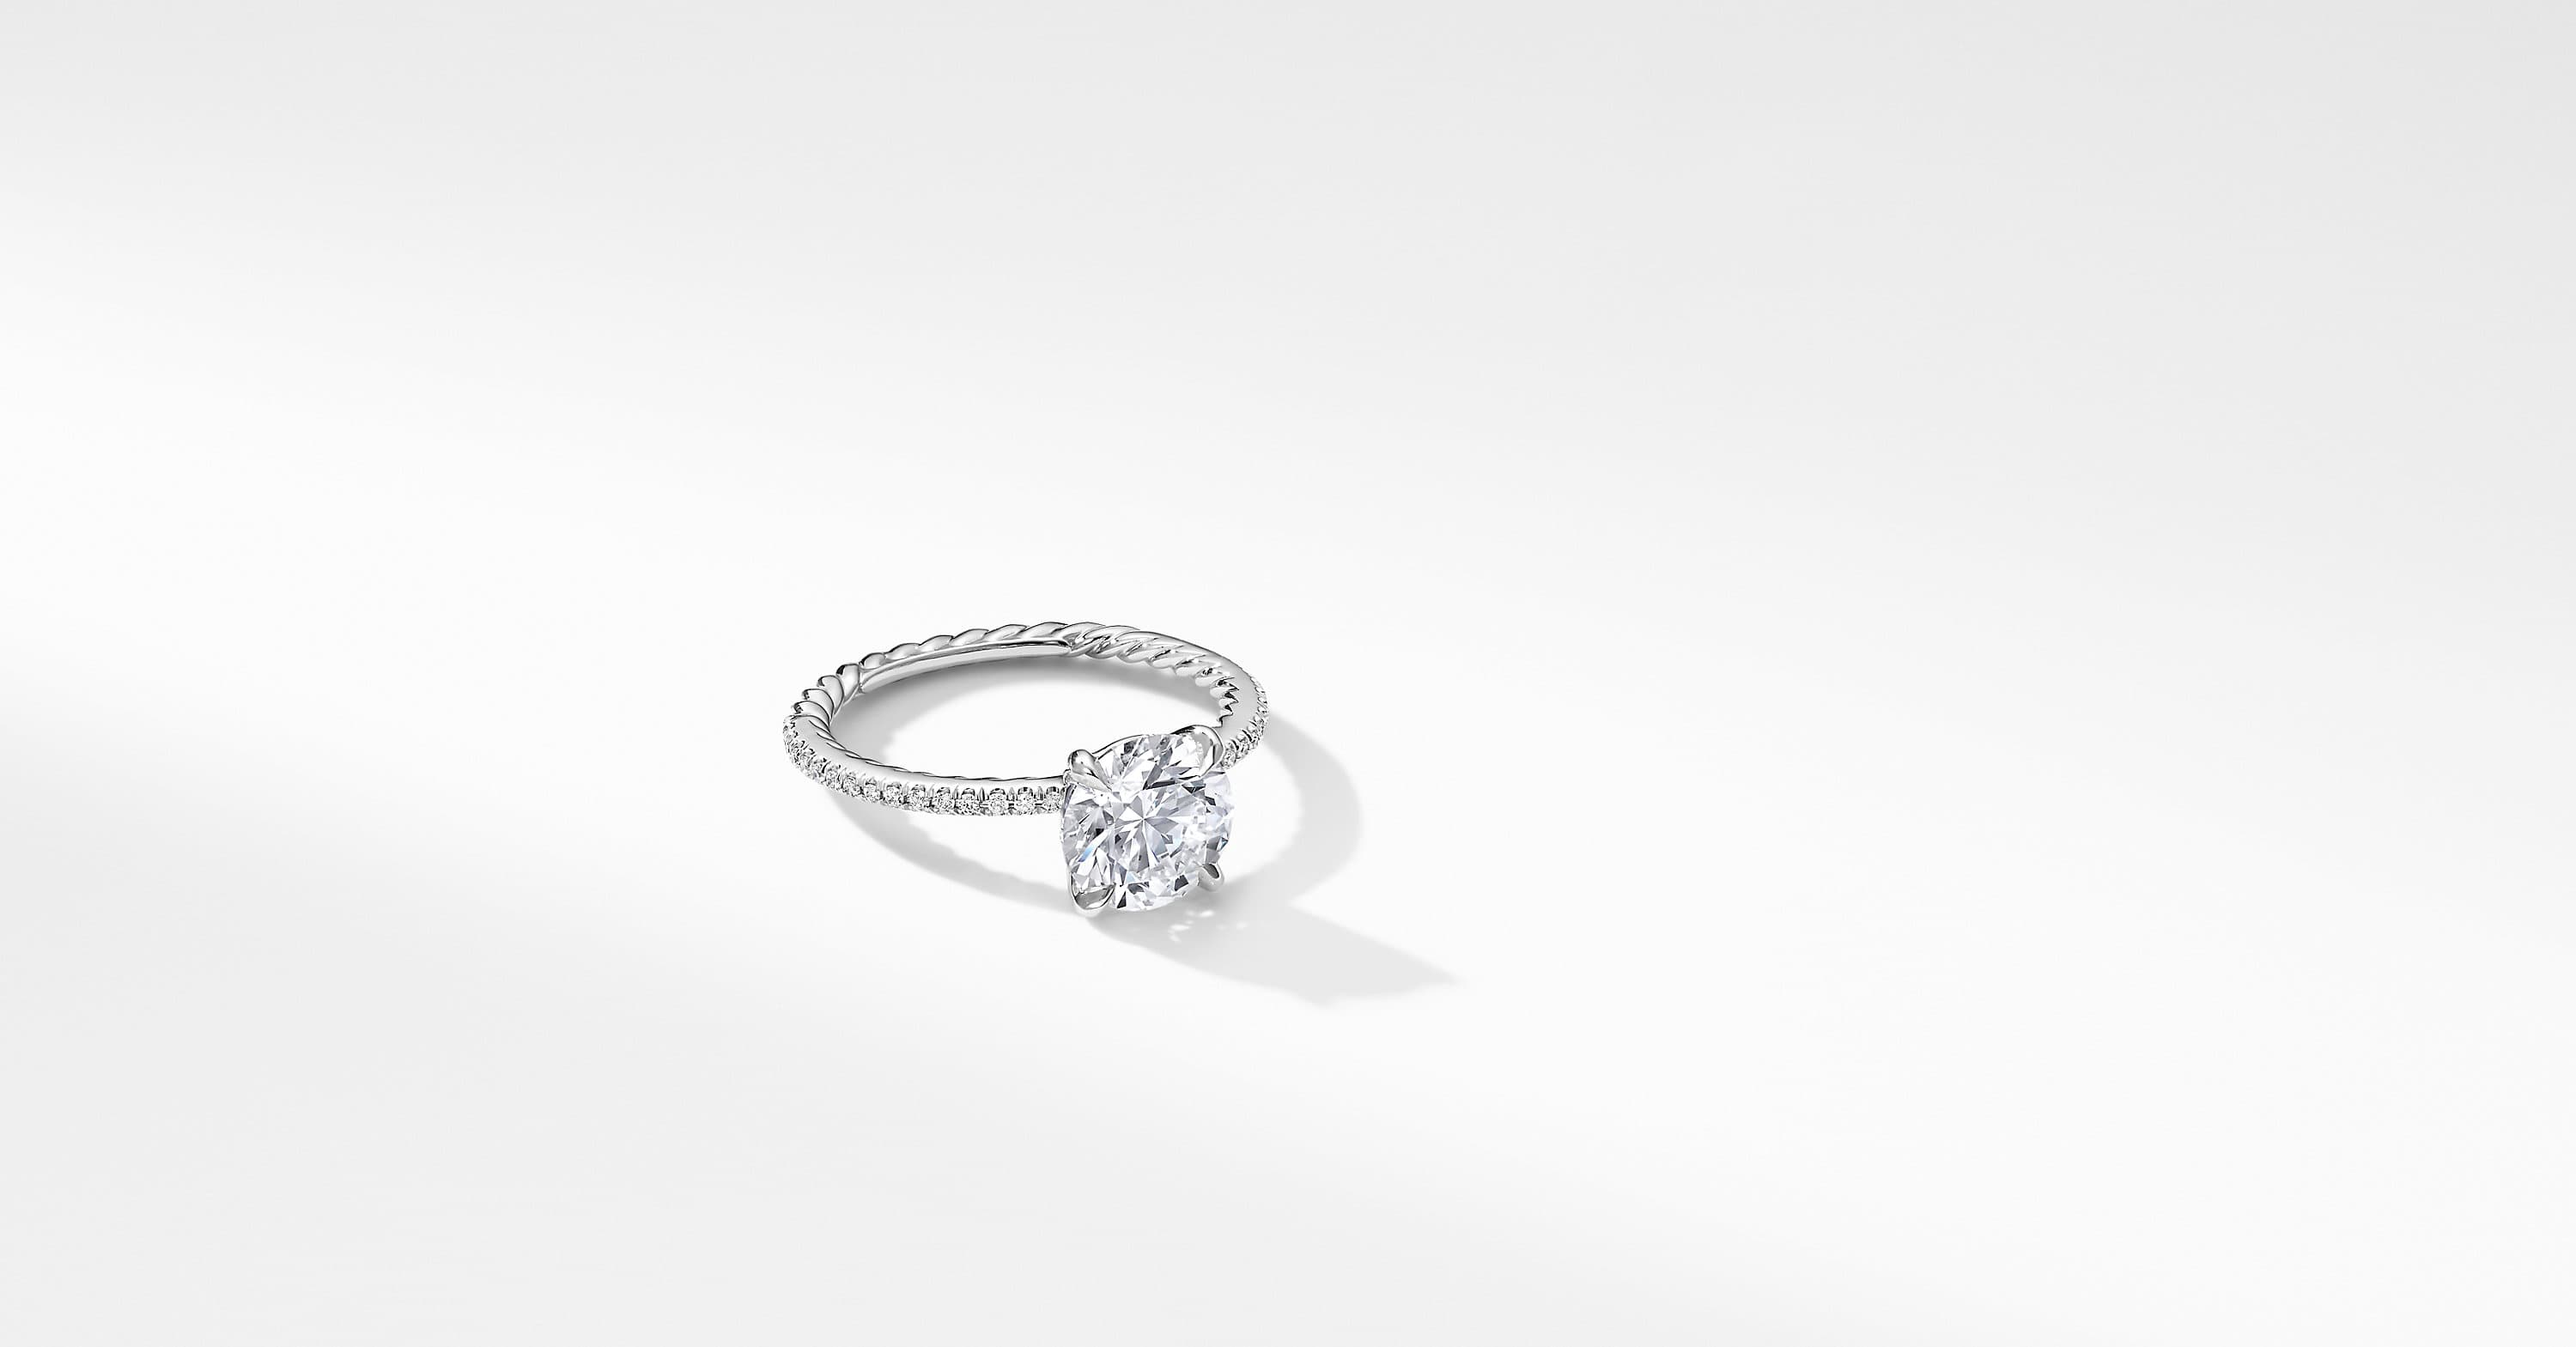 DY Eden Micro Pavé Engagement Ring in Platinum, Round